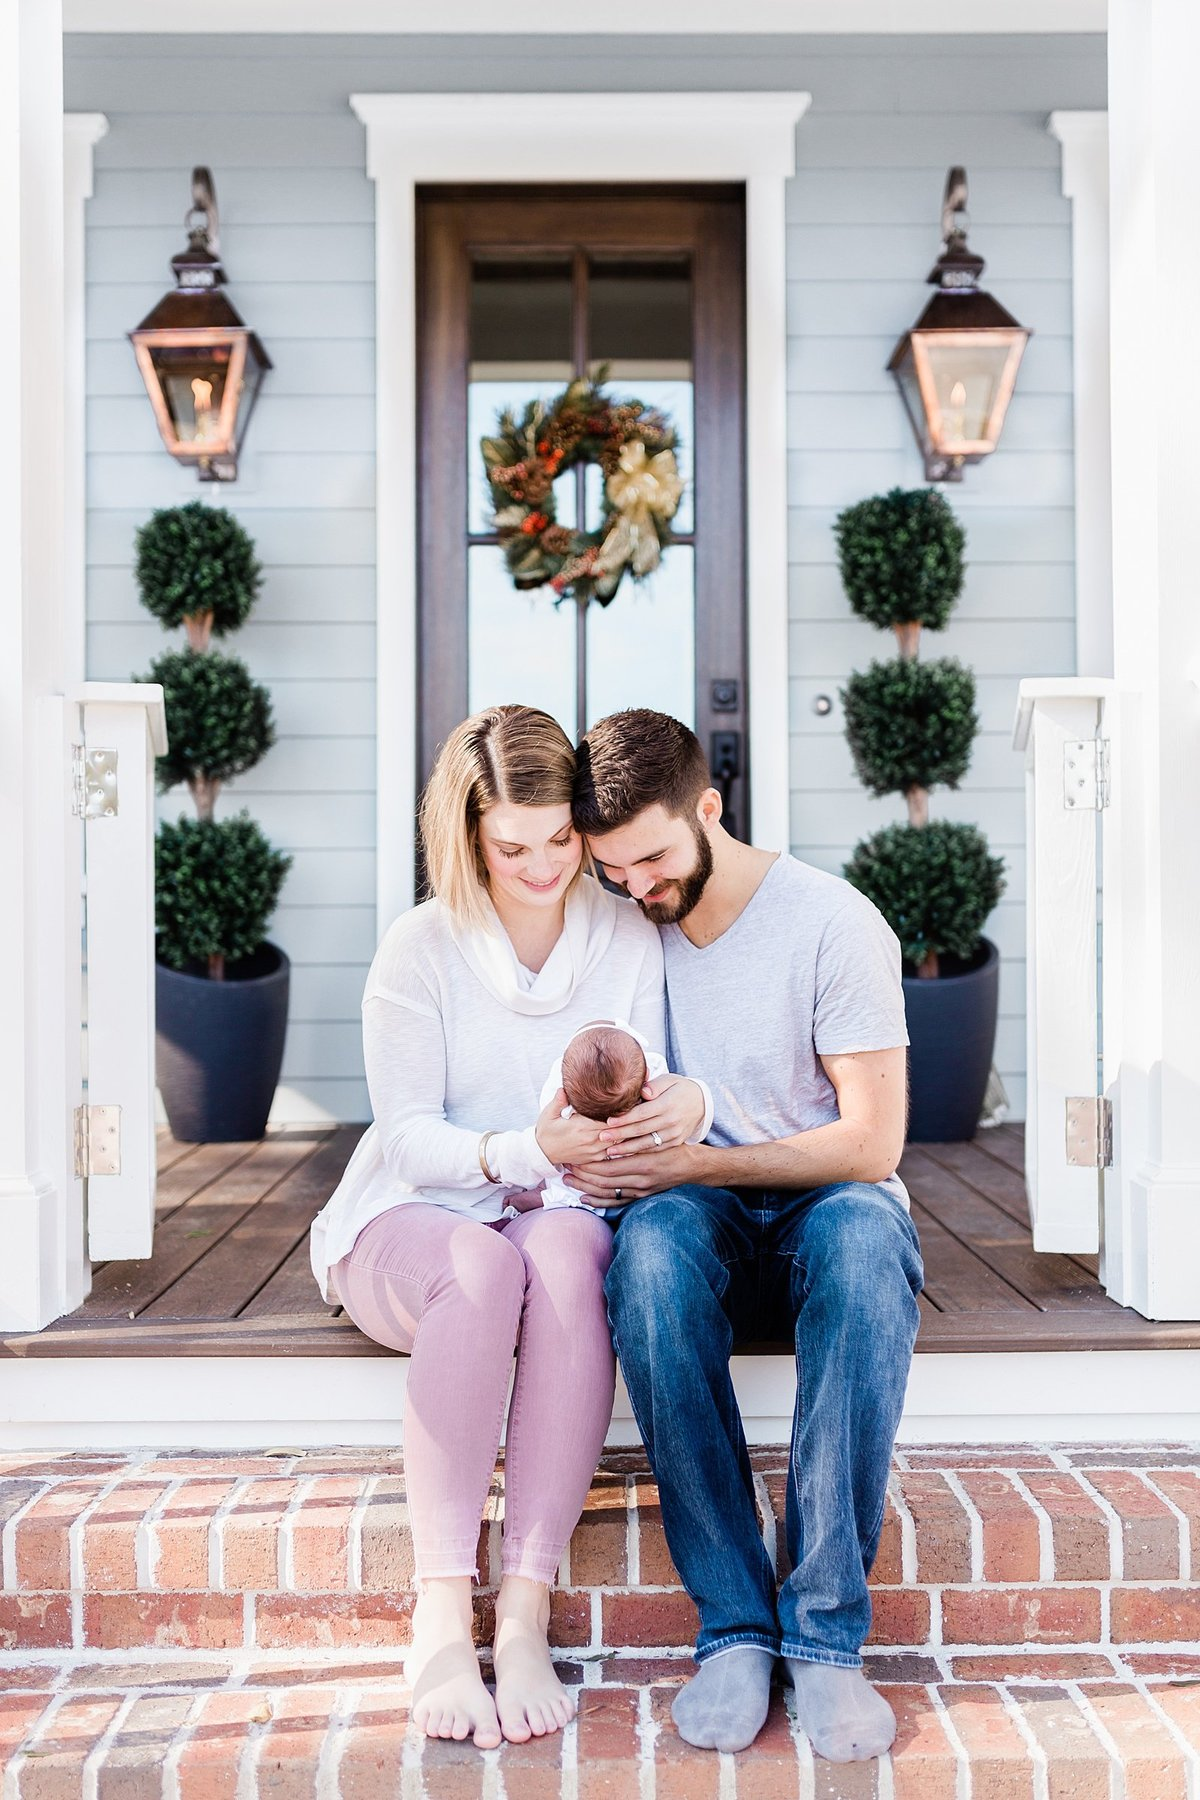 Charleston-Newborn-Photographer-Charleston-Lifestyle-Newborn-Photography-Mount-Pleasant-Newborn-Photographer-Lifestyle-Newborn-Session-37